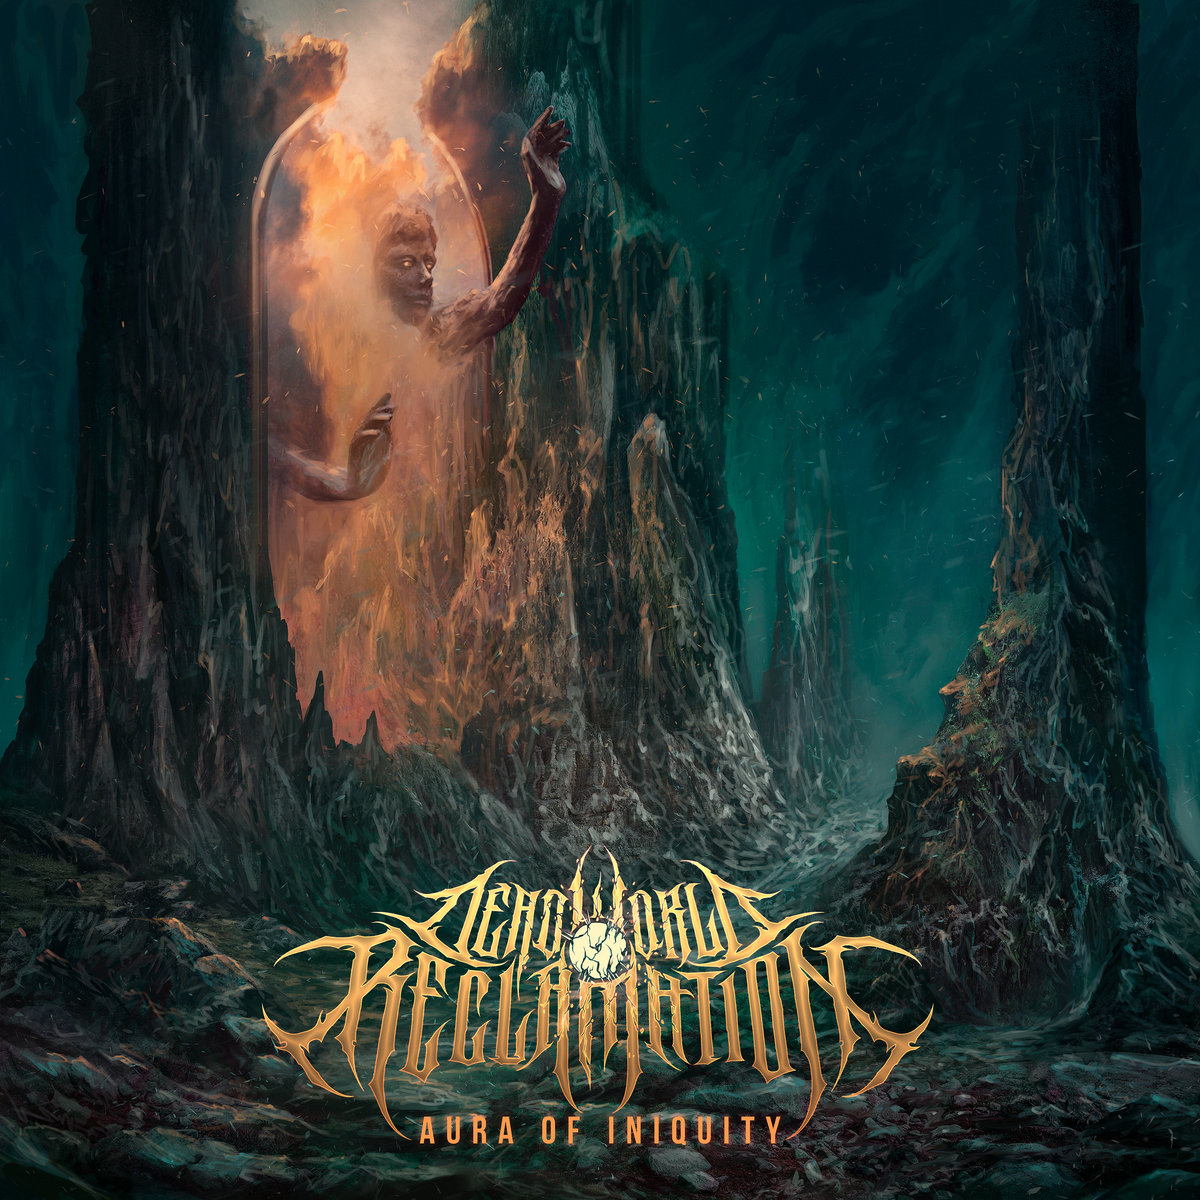 Dead World Reclamation – Aura Of Iniquity